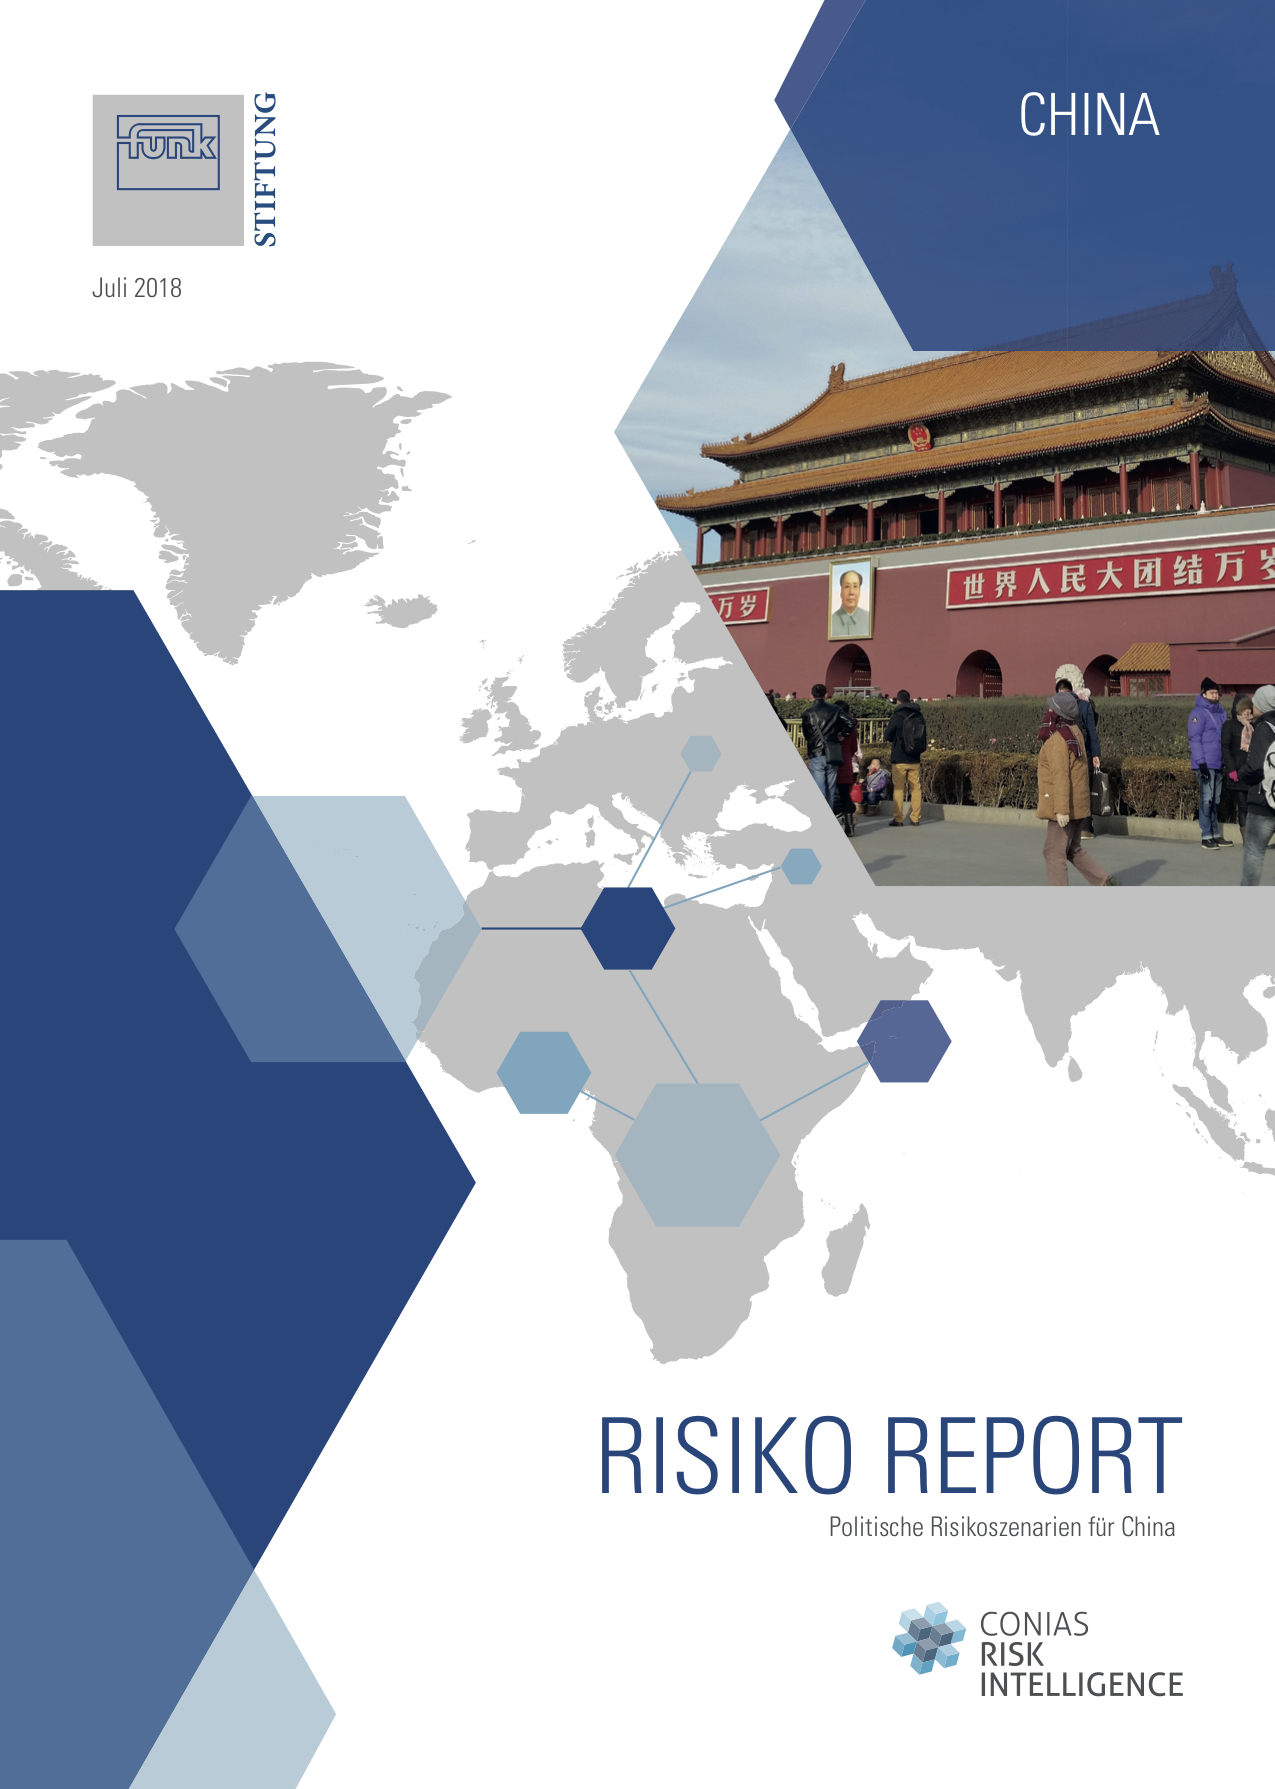 Risiko Report China